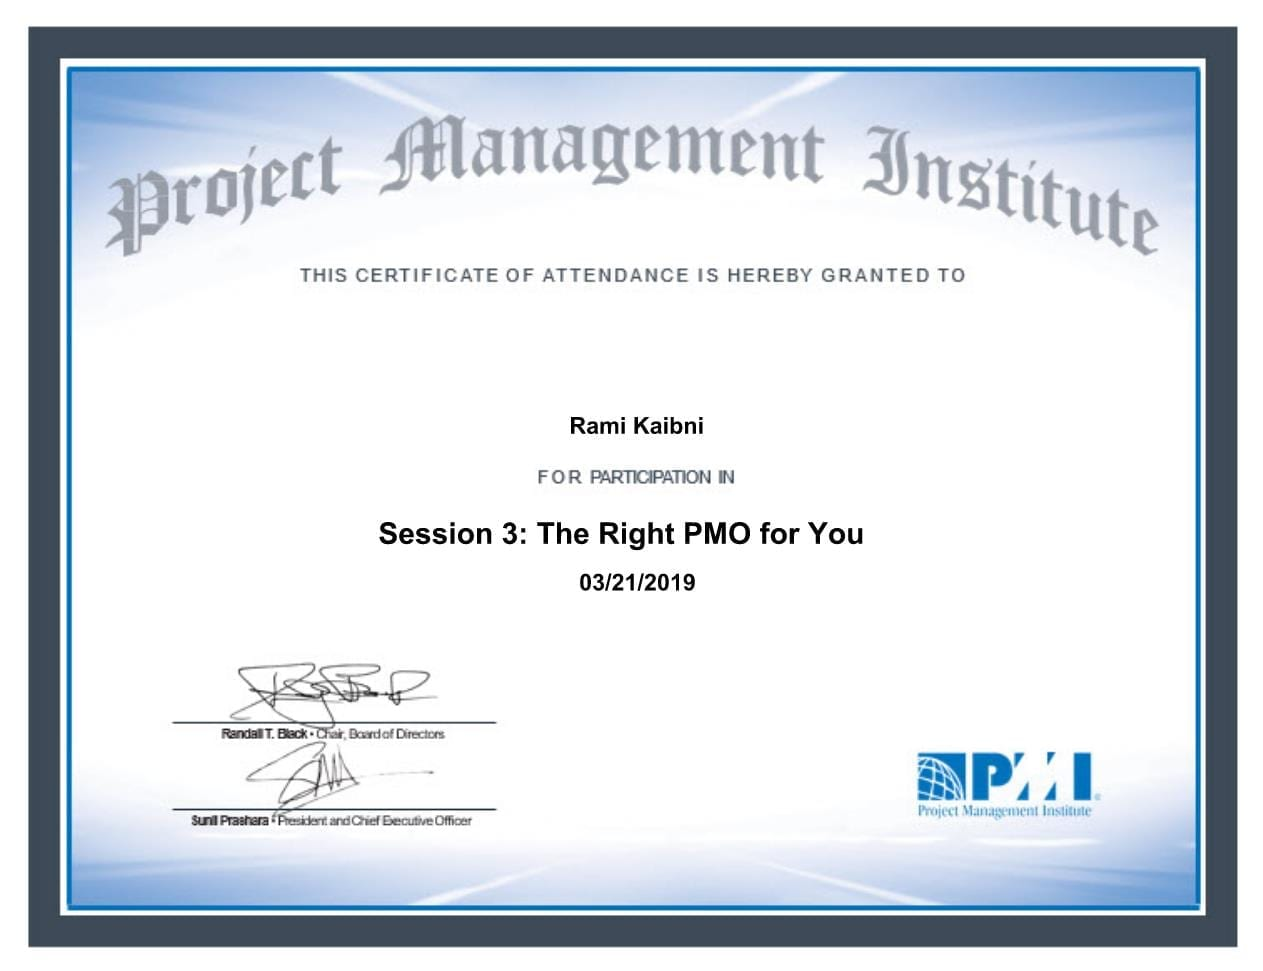 Session 3 - The Right PMO for You